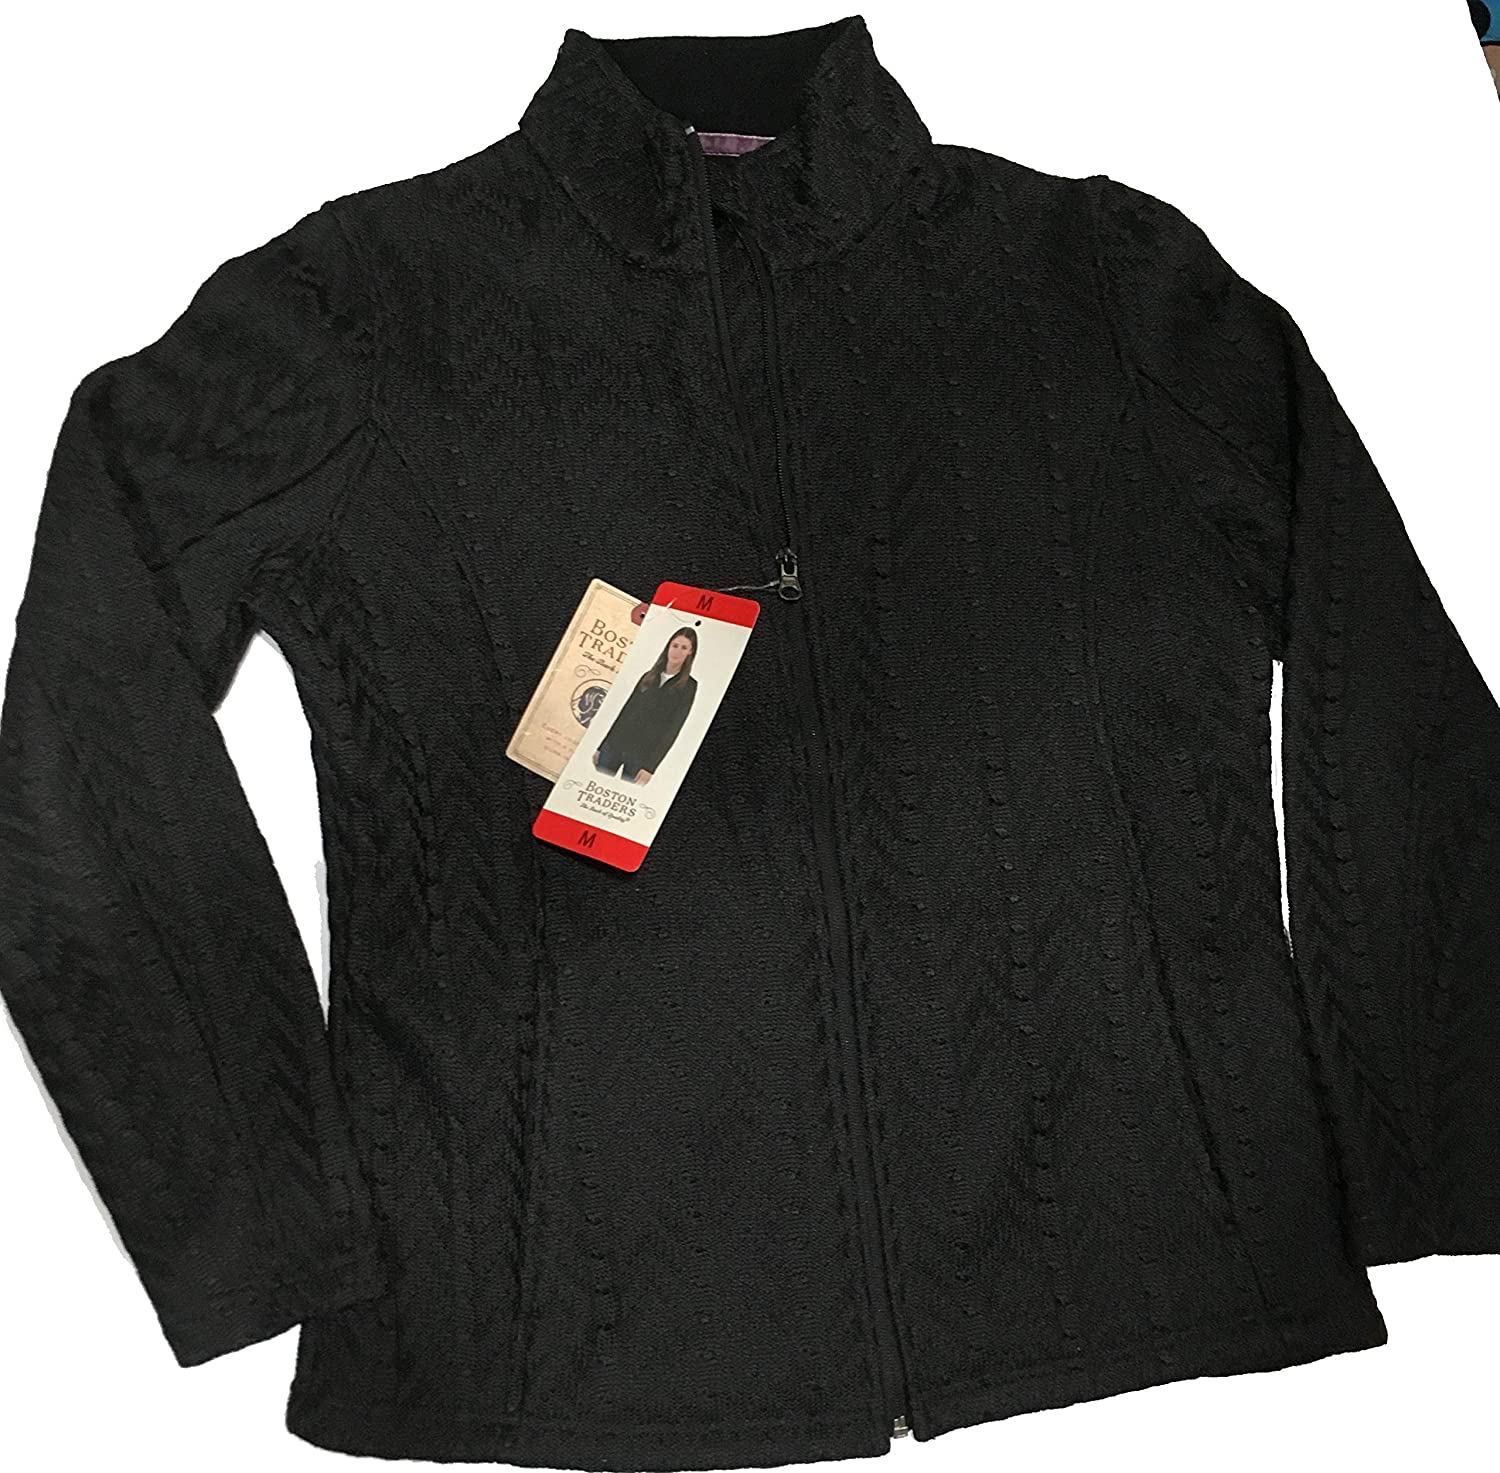 Boston Traders Women's Fleece Lined Cable Knit Sweter Jacket